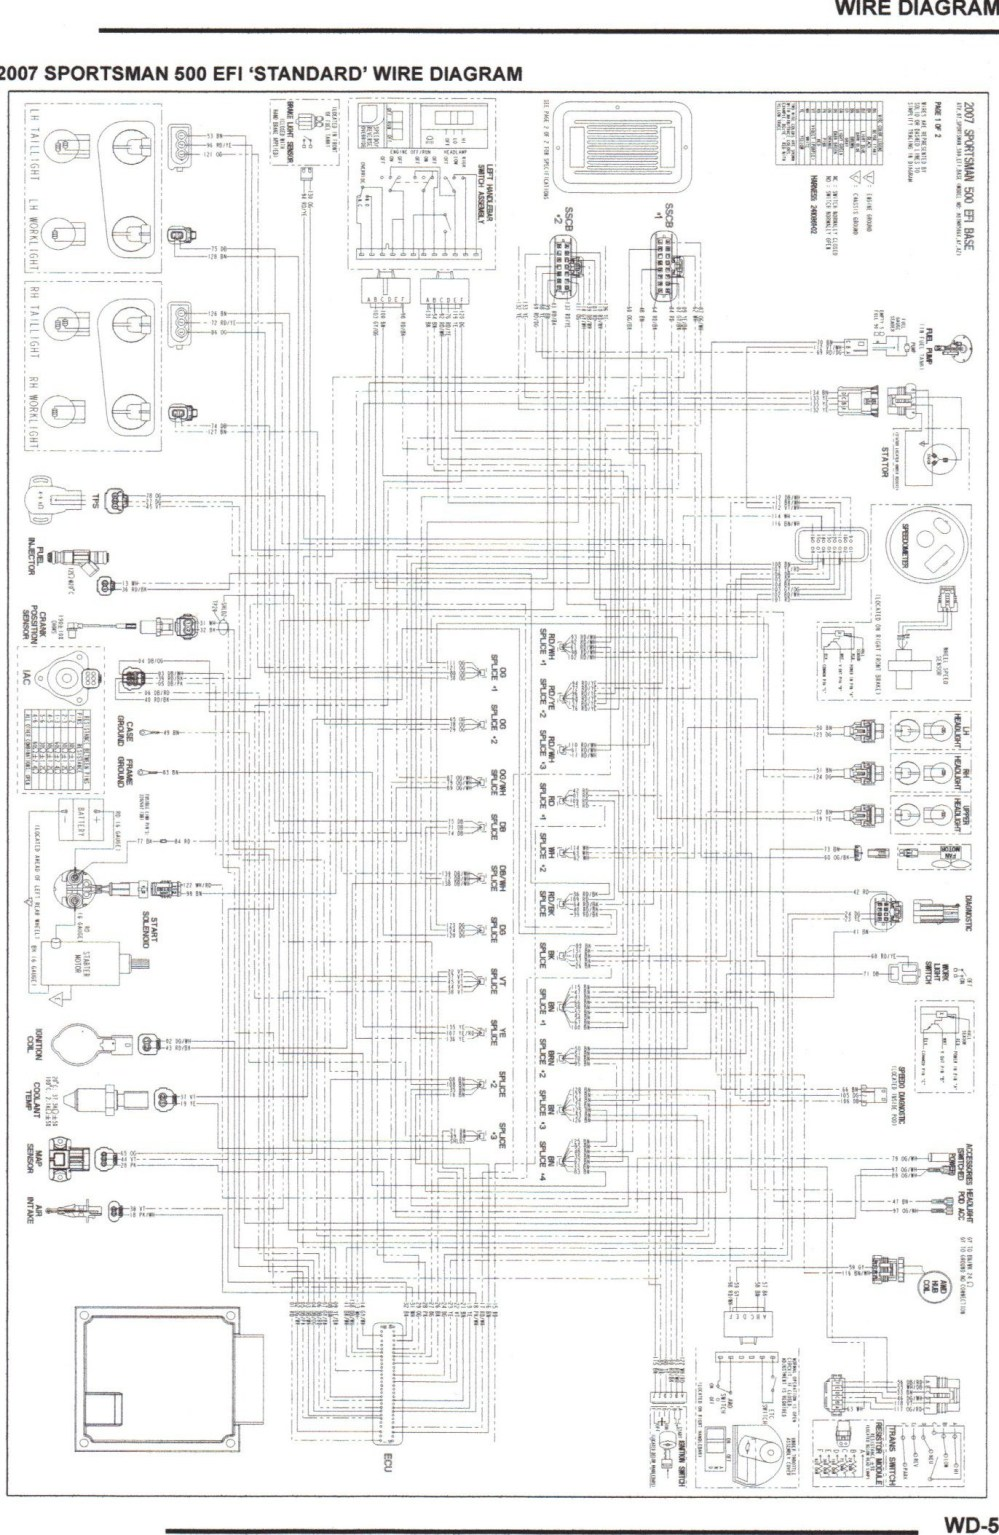 medium resolution of wiring diagram for polaris ranger 700 efi search for wiring diagrams u2022 rh stephenpoon co 2005